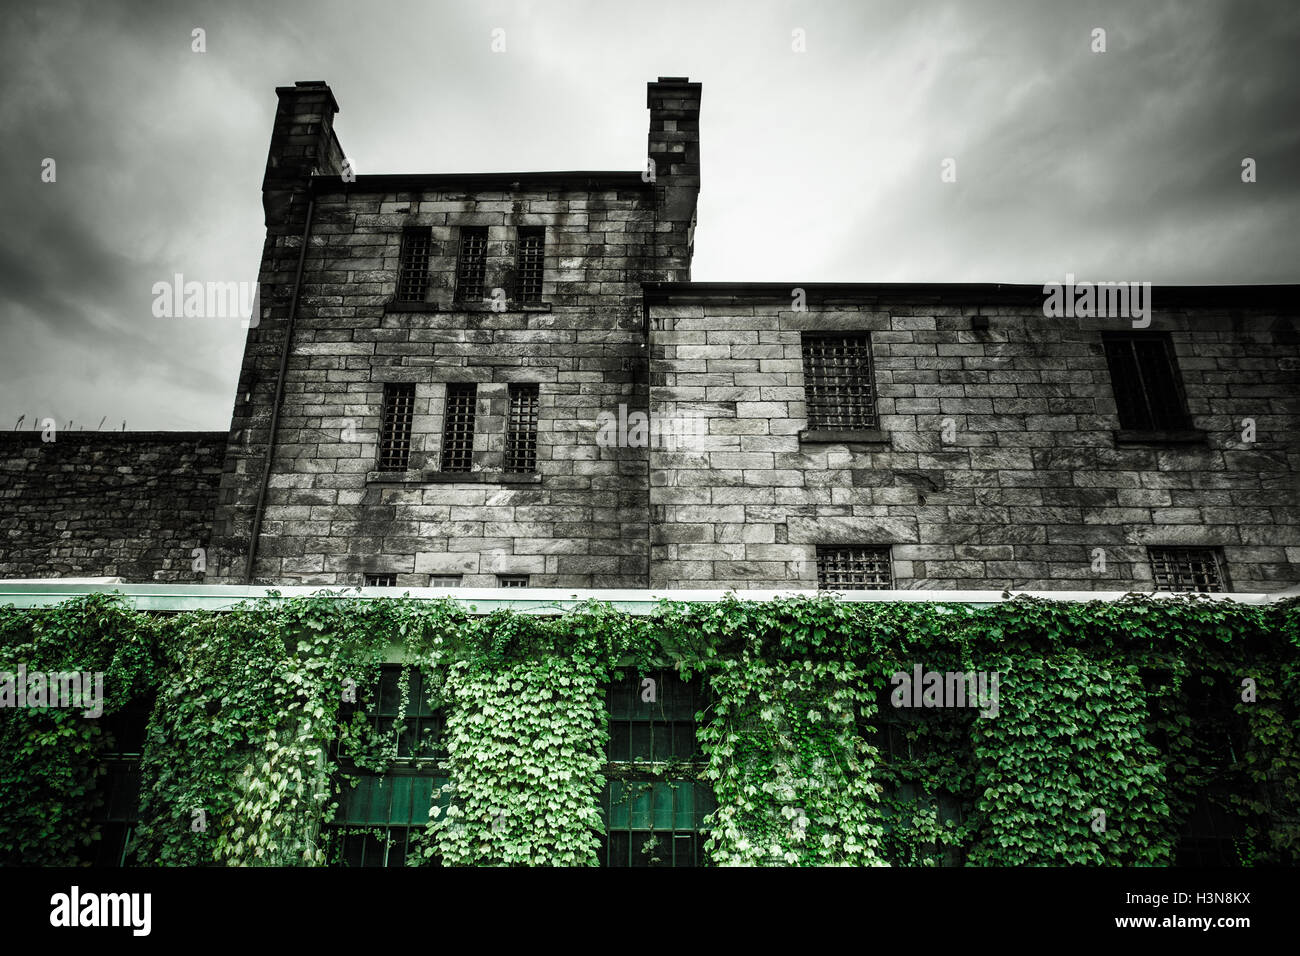 Ominous exterior view of Eastern State Penitentiary in Philadelphia PA - Stock Image